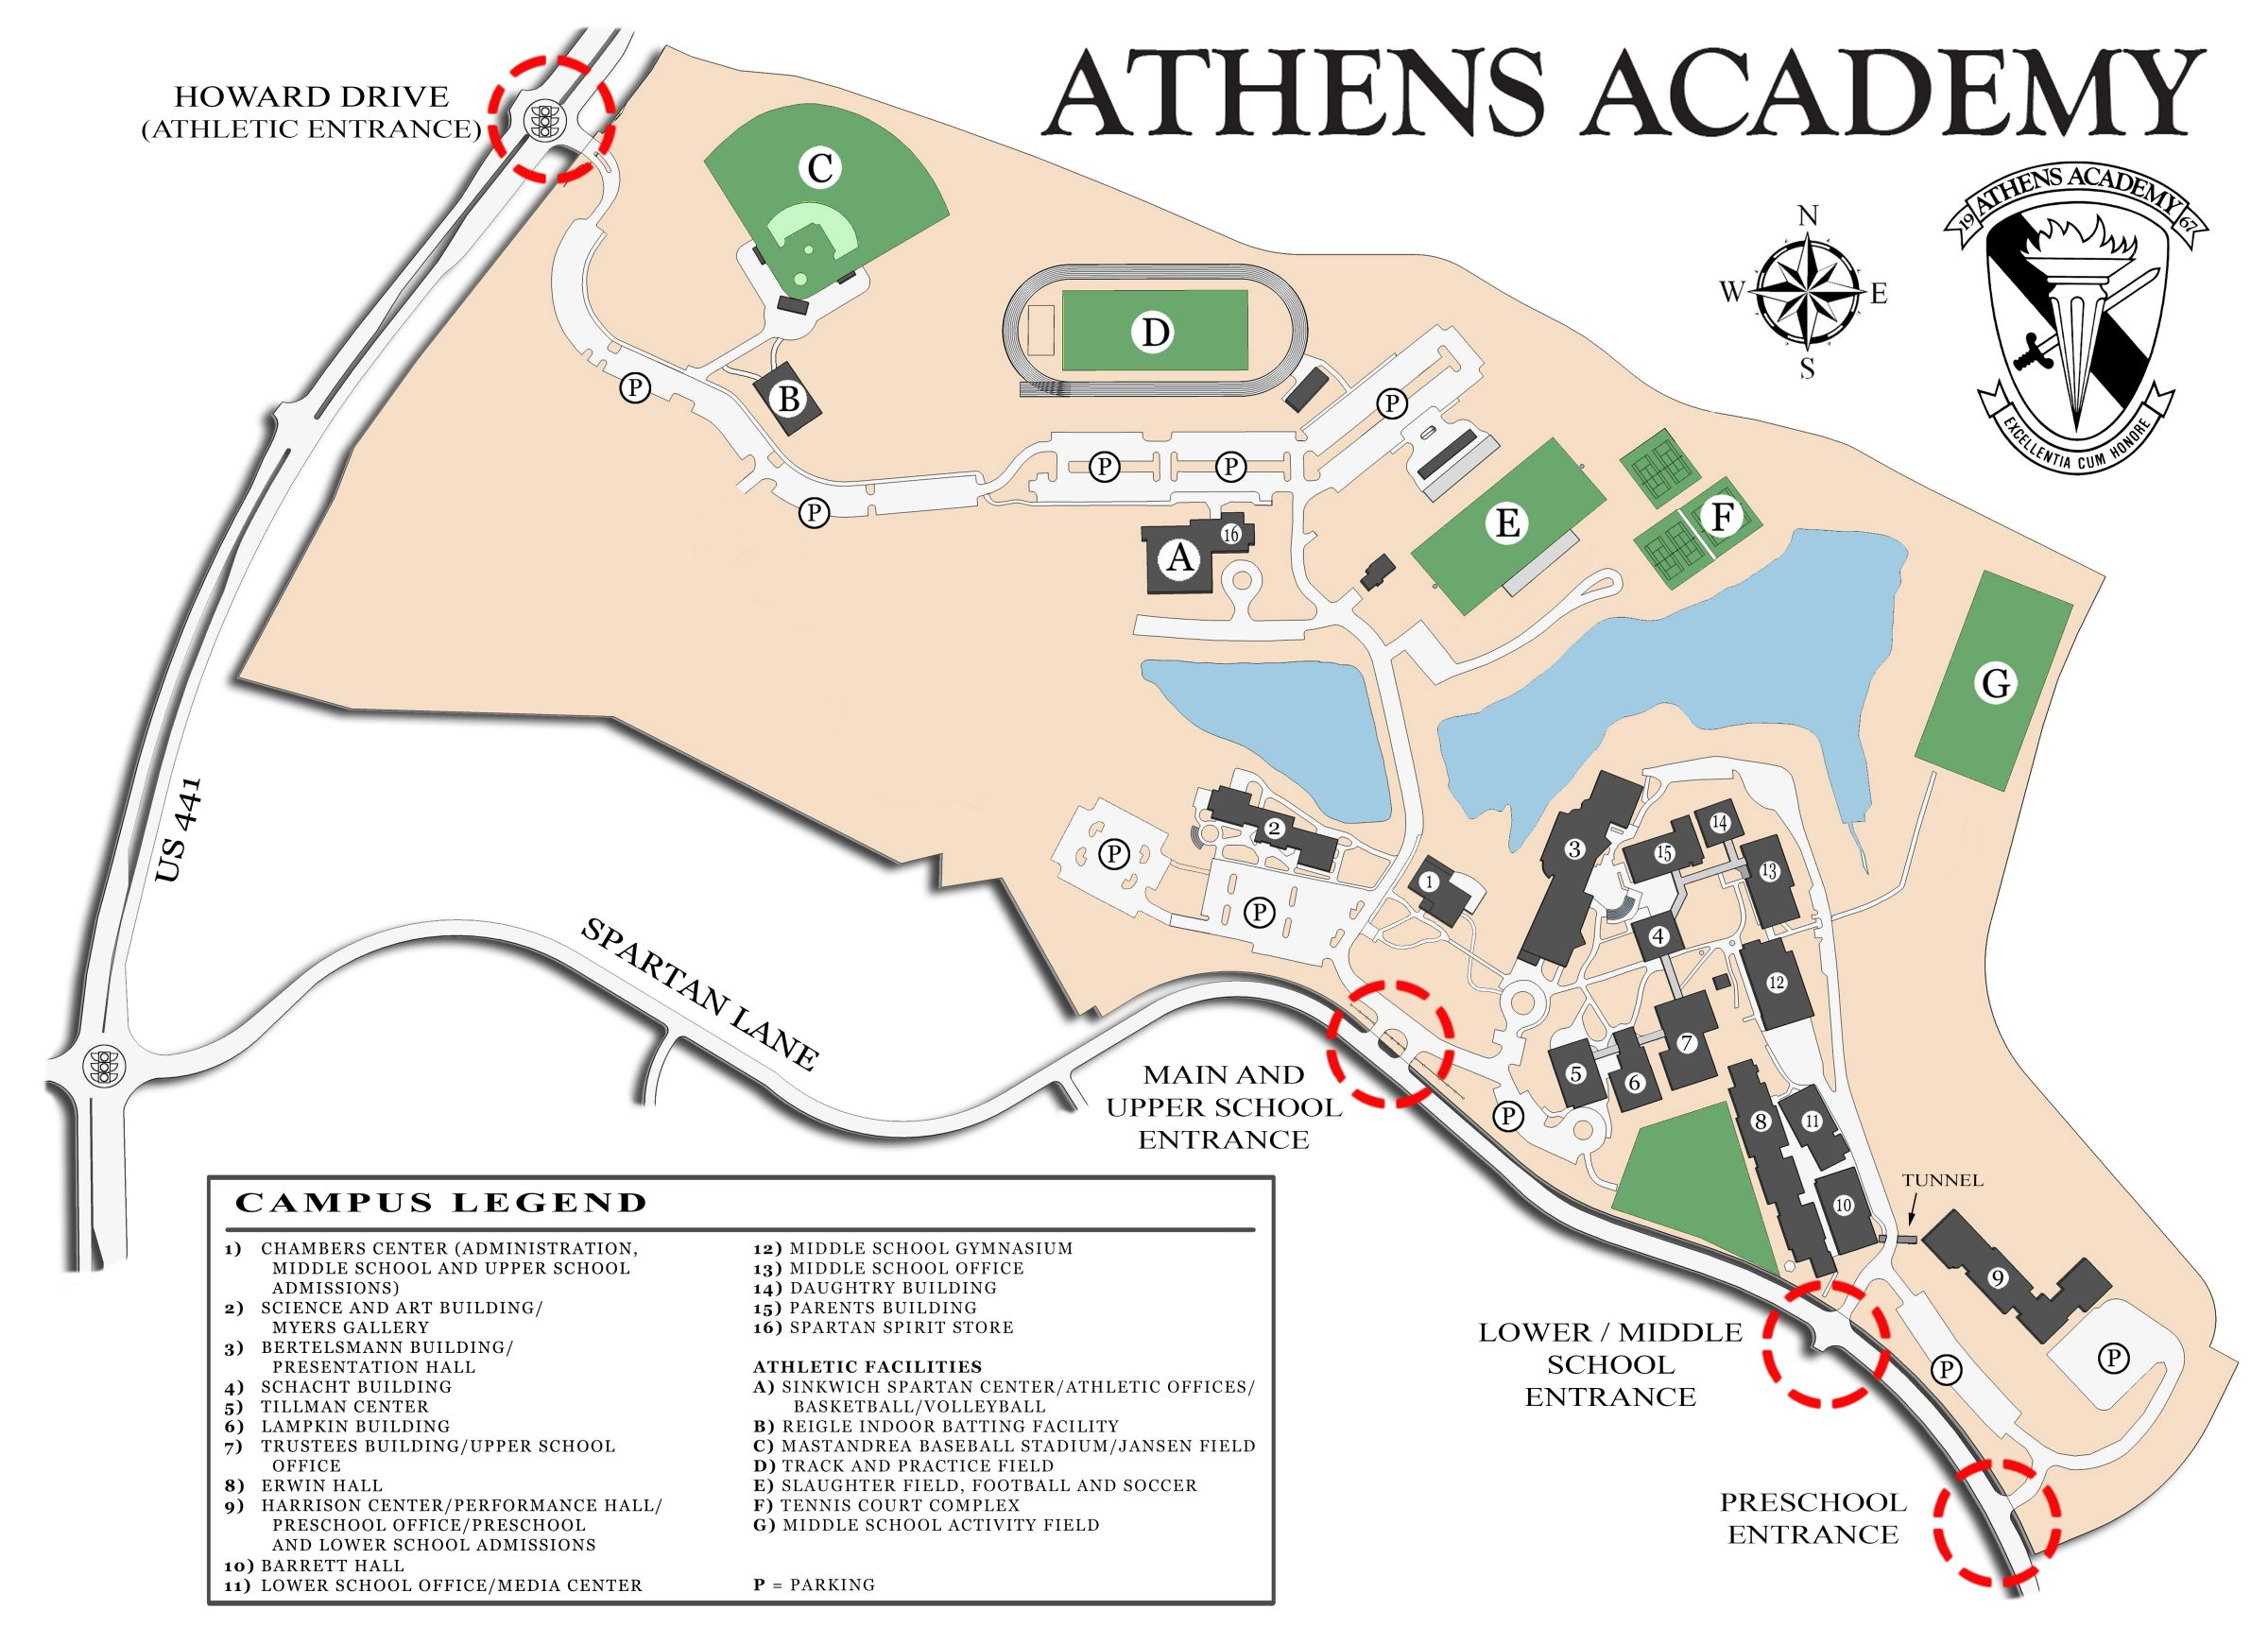 Uga Campus Map With Building Numbers.Directions Campus Map And Faculty Contacts